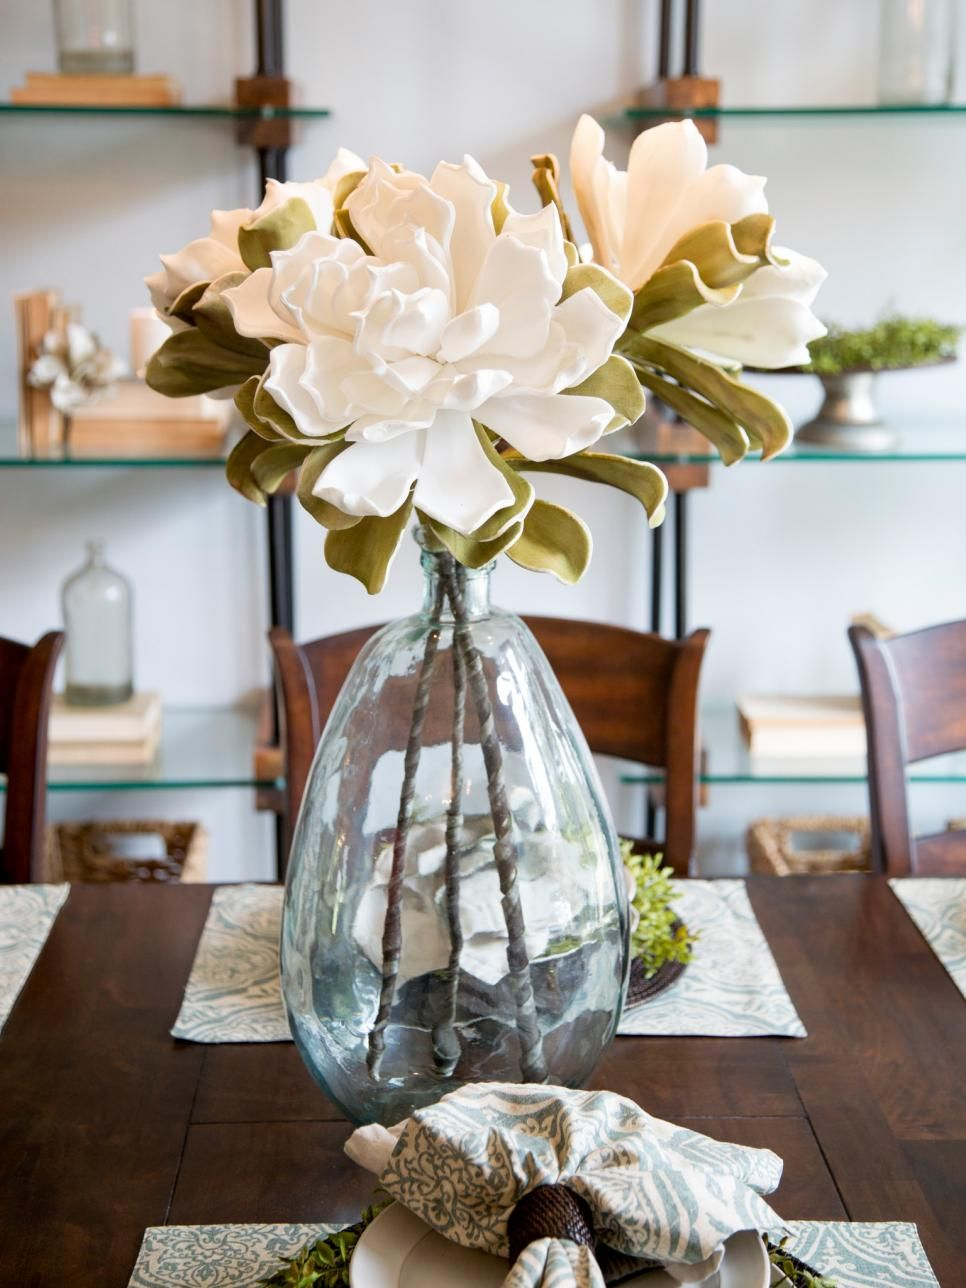 Big Glass Vases 30 Signs Youre A Fixer Upper Fanatic Hgtv Joanna Gaines And